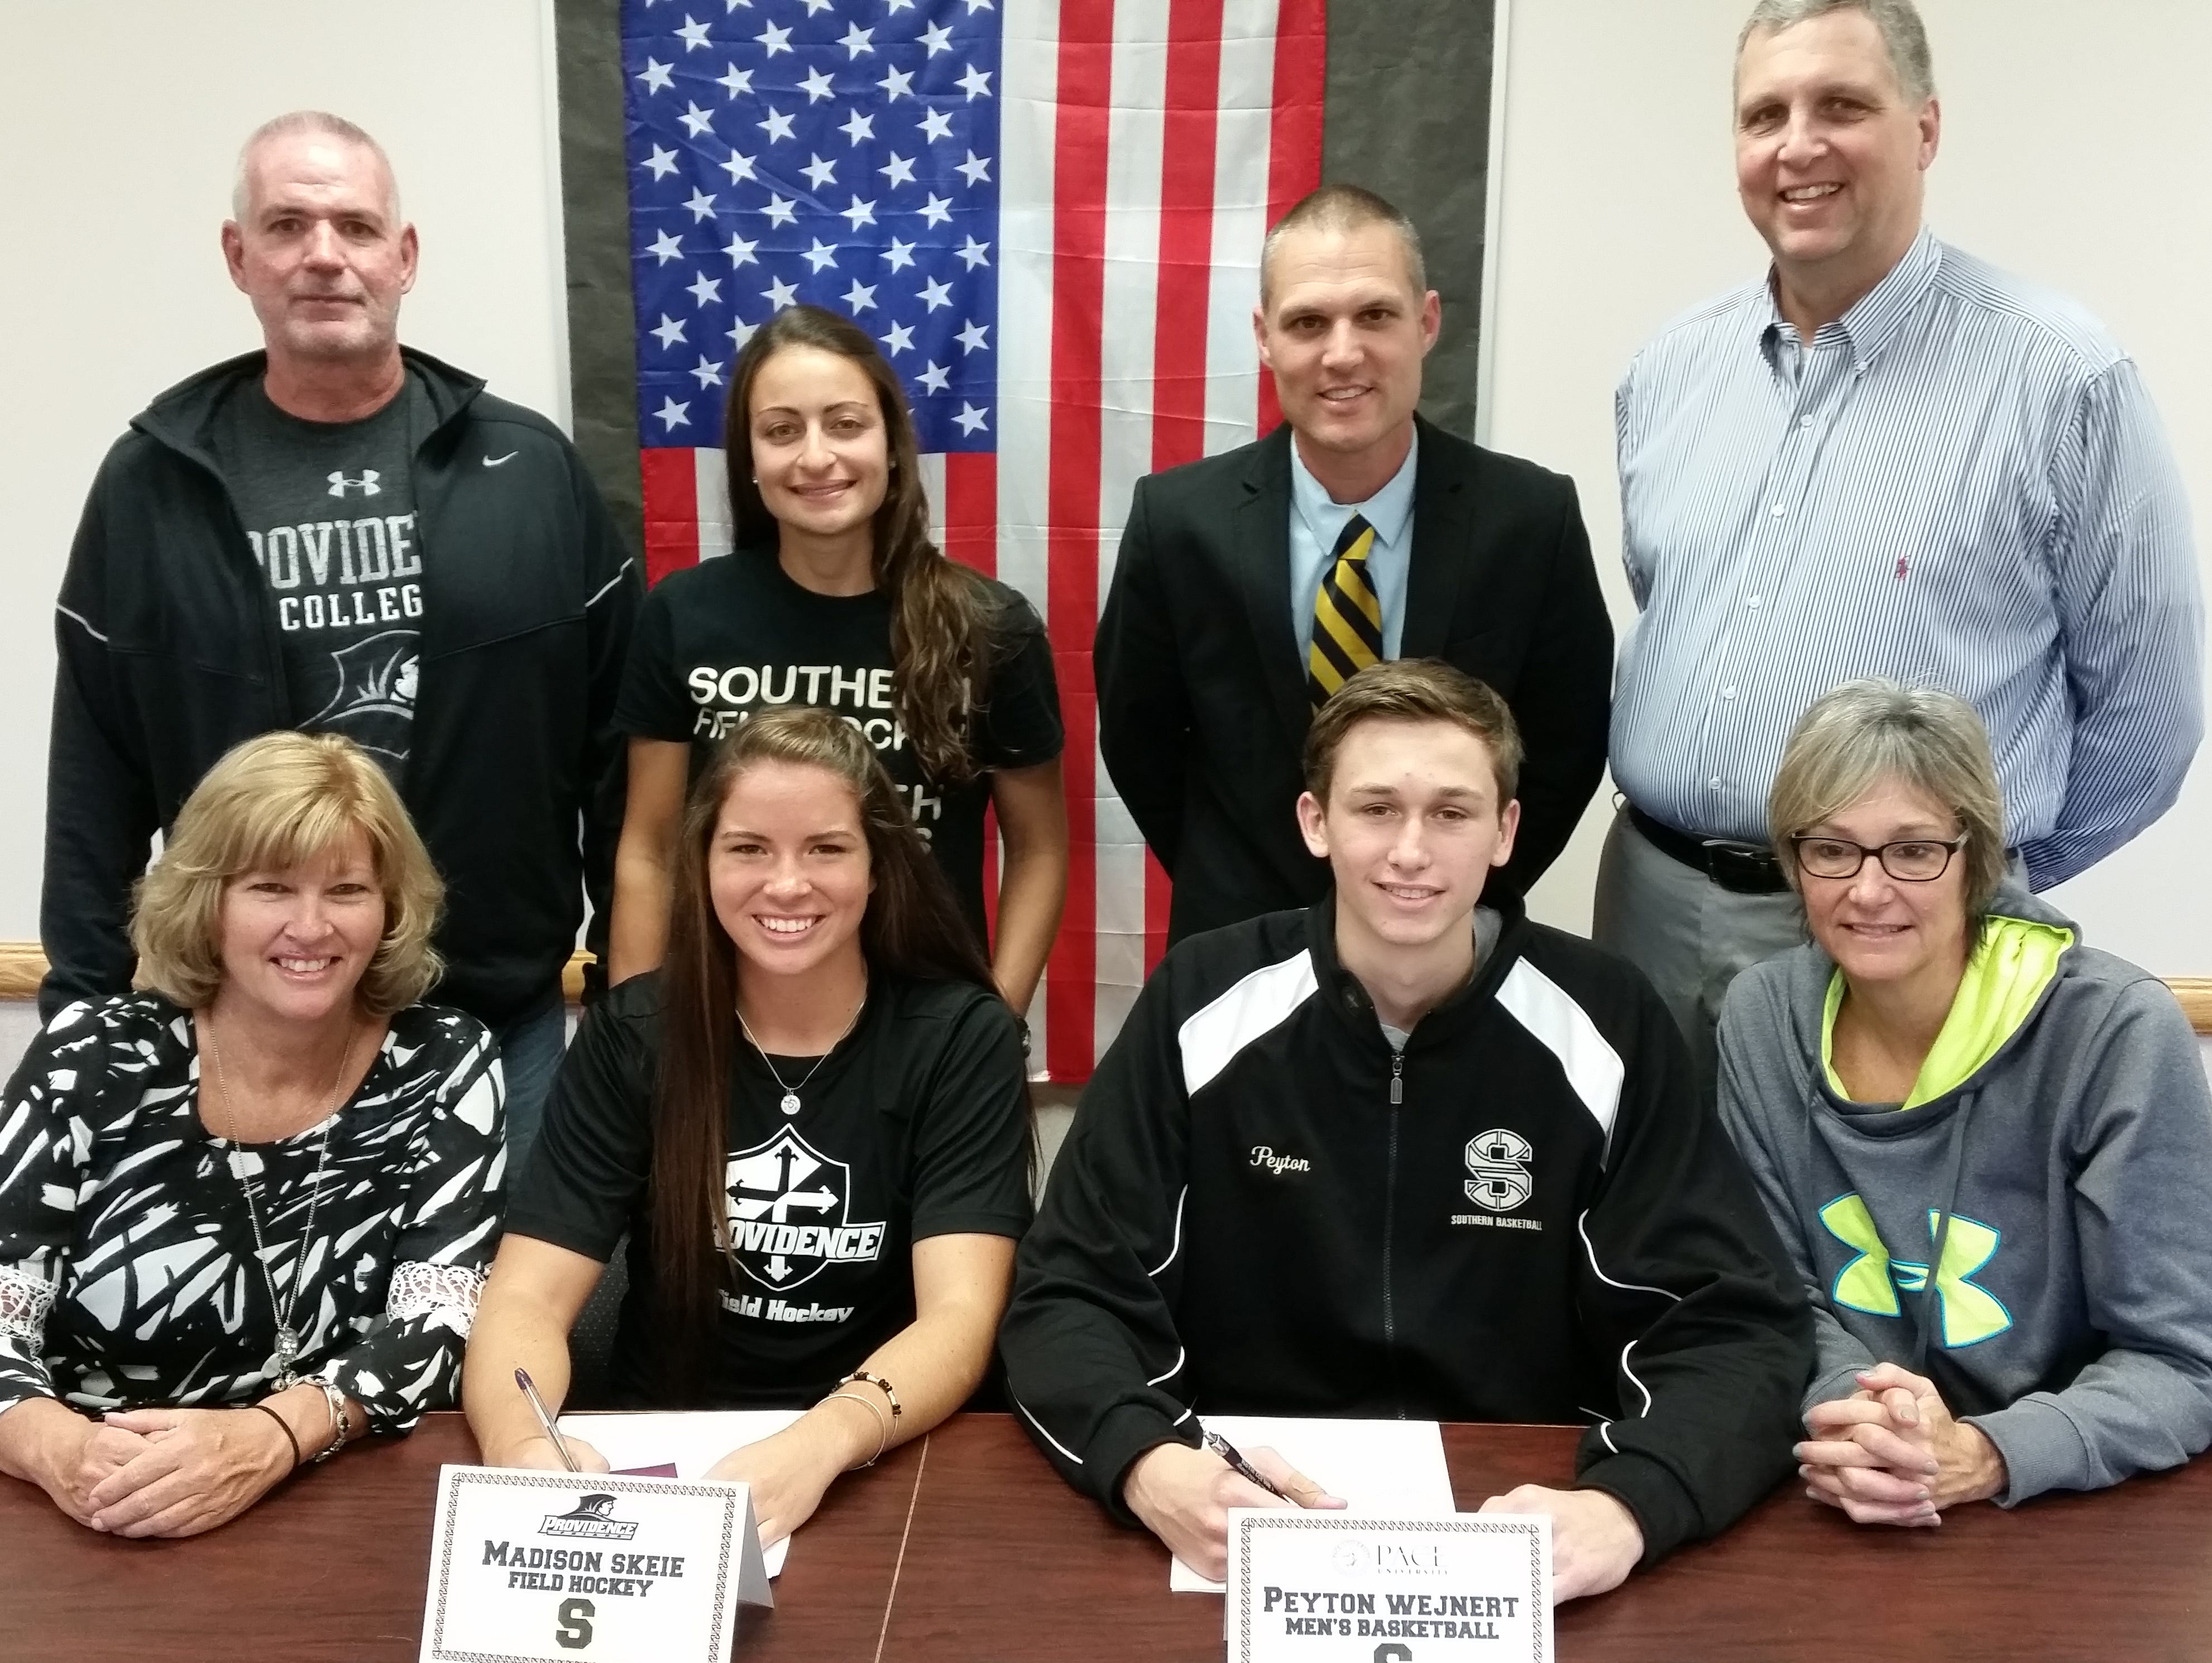 Congrats Southern Regional High School Senior Athletes Madison Skeie & Peyton Wejnert on signing their National Letters of Intent on Wednesday, November 11, 2015. Madison will continue her education and field hockey career at Providence College. Peyton will continue his education and basketball career at Pace University. They are surrounded by their parents, (Cynthia & James Skeie) (Richard & Karyn Wejnert) plus Southern Regional Field Hockey Coach Ms. Jenna Lombardo and Southern Regional Boys' Basketball Coach Mr. Eric Fierro. #RamPride